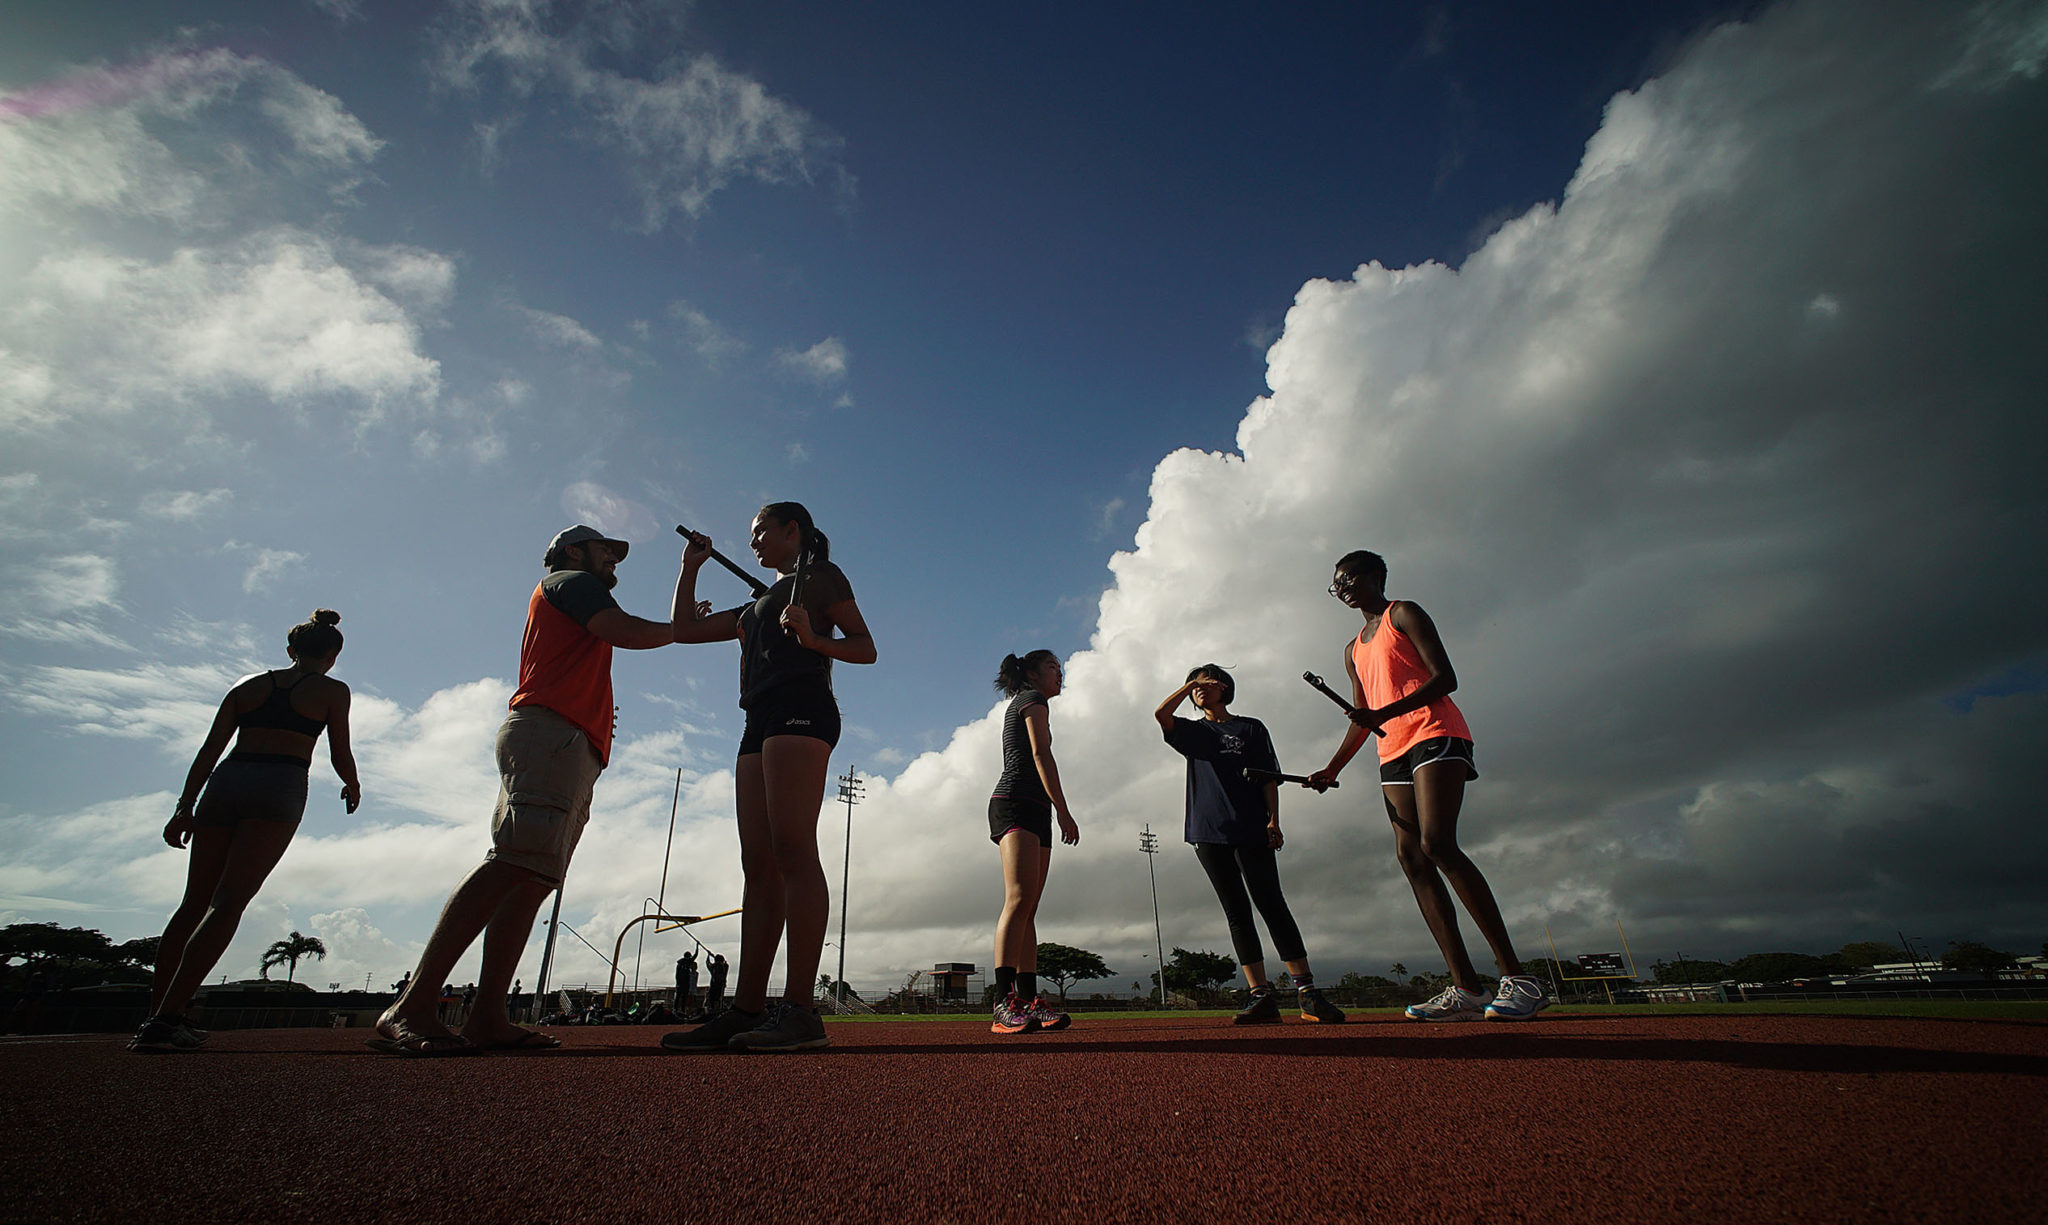 Campbell HS girls track members practice on the field.